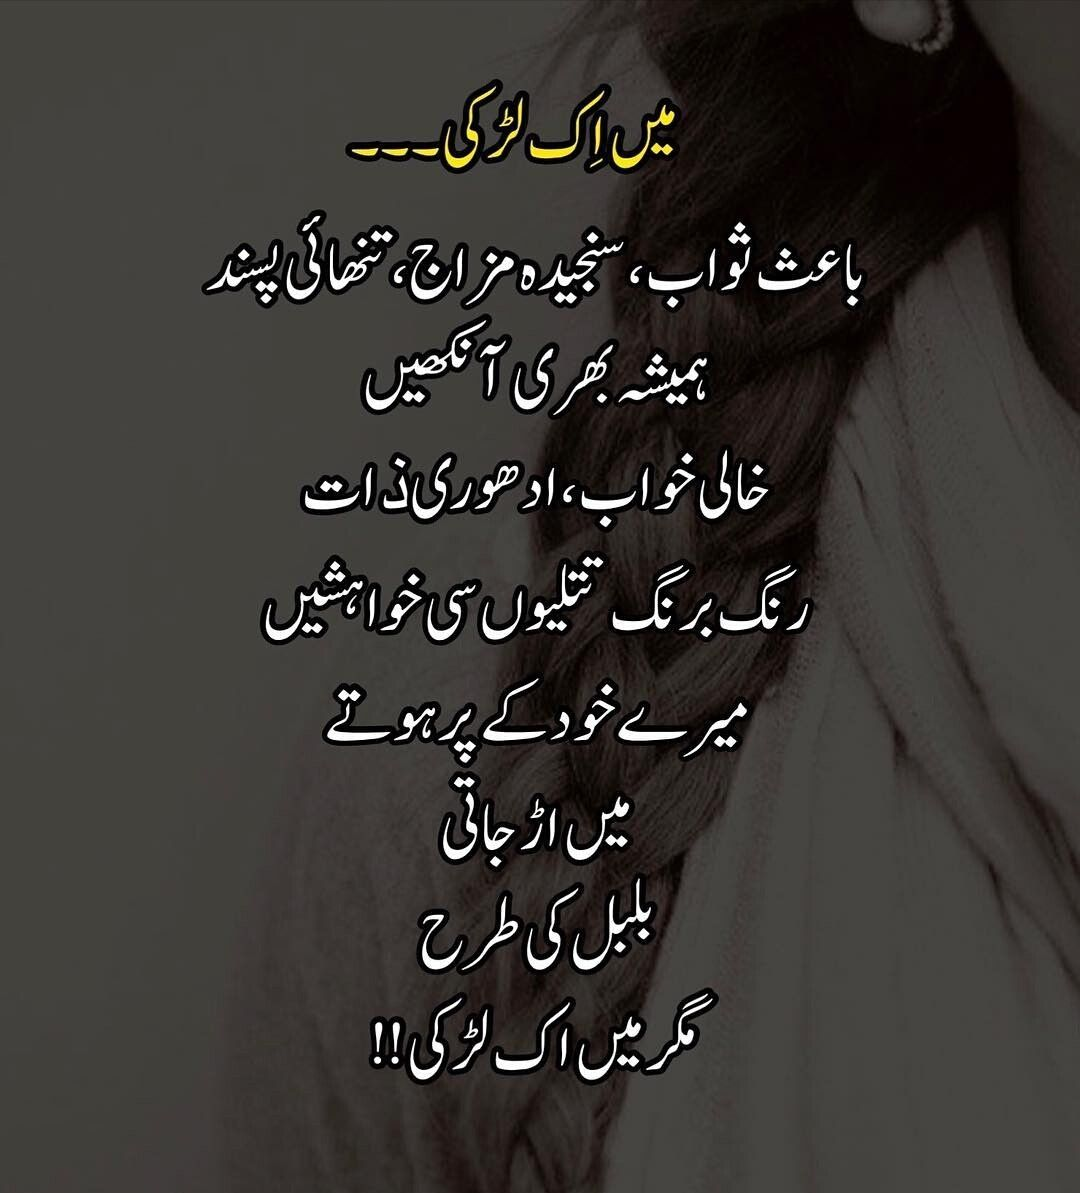 Pin by Noor khalid on poetry Life quotes, Best urdu